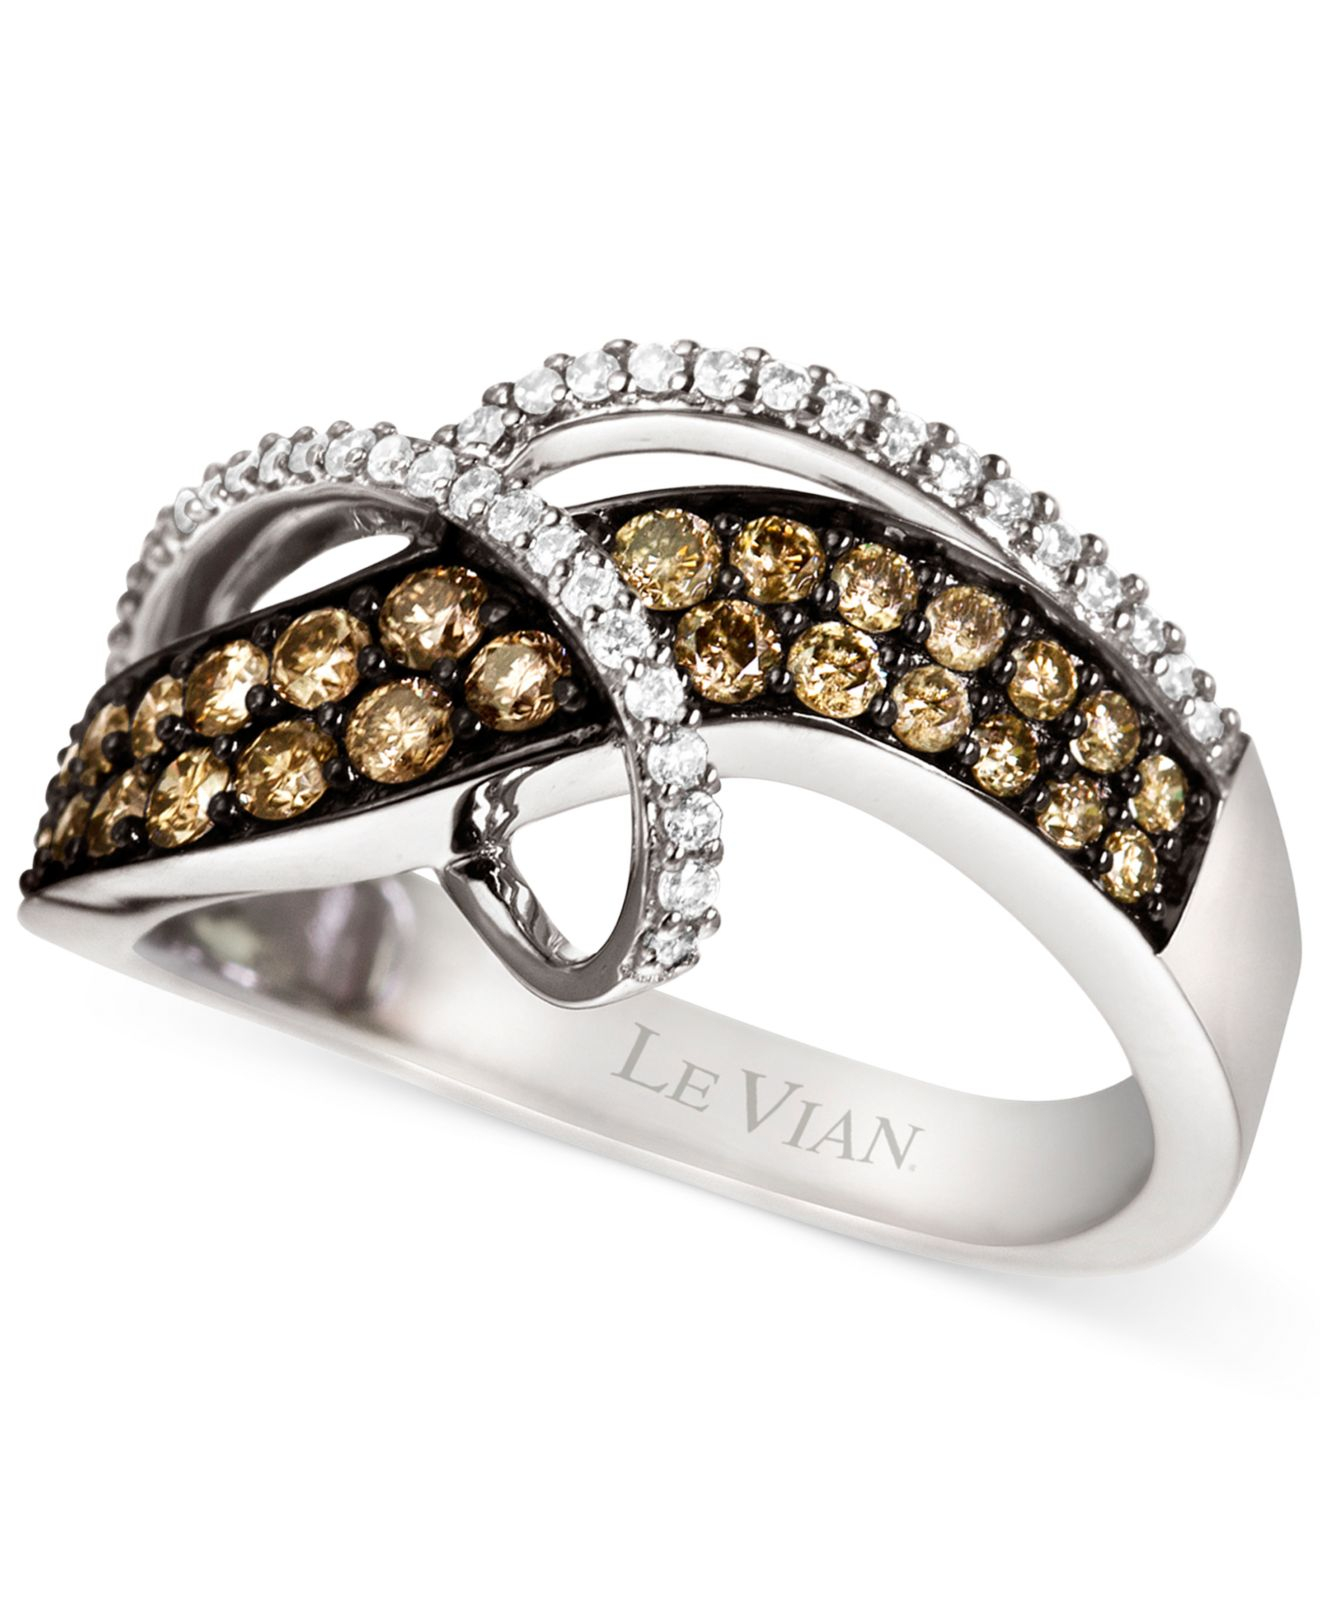 Le vian Chocolate And Vanilla Diamond Swirl Ring In 14k White Gold ...